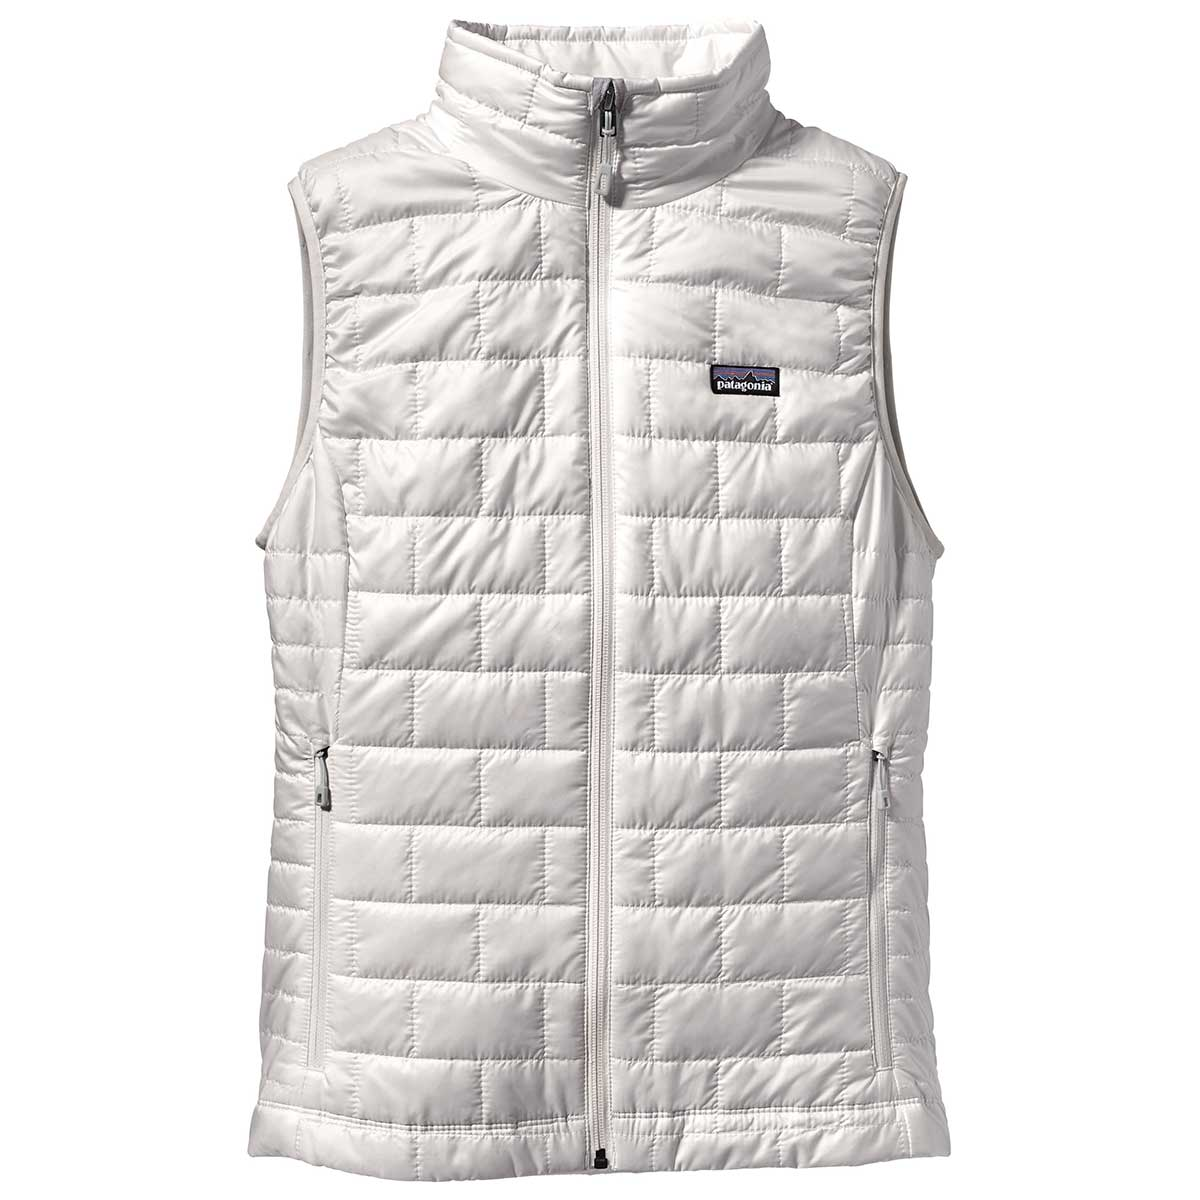 Patagonia women's Nano Puff Vest in Birch White front view